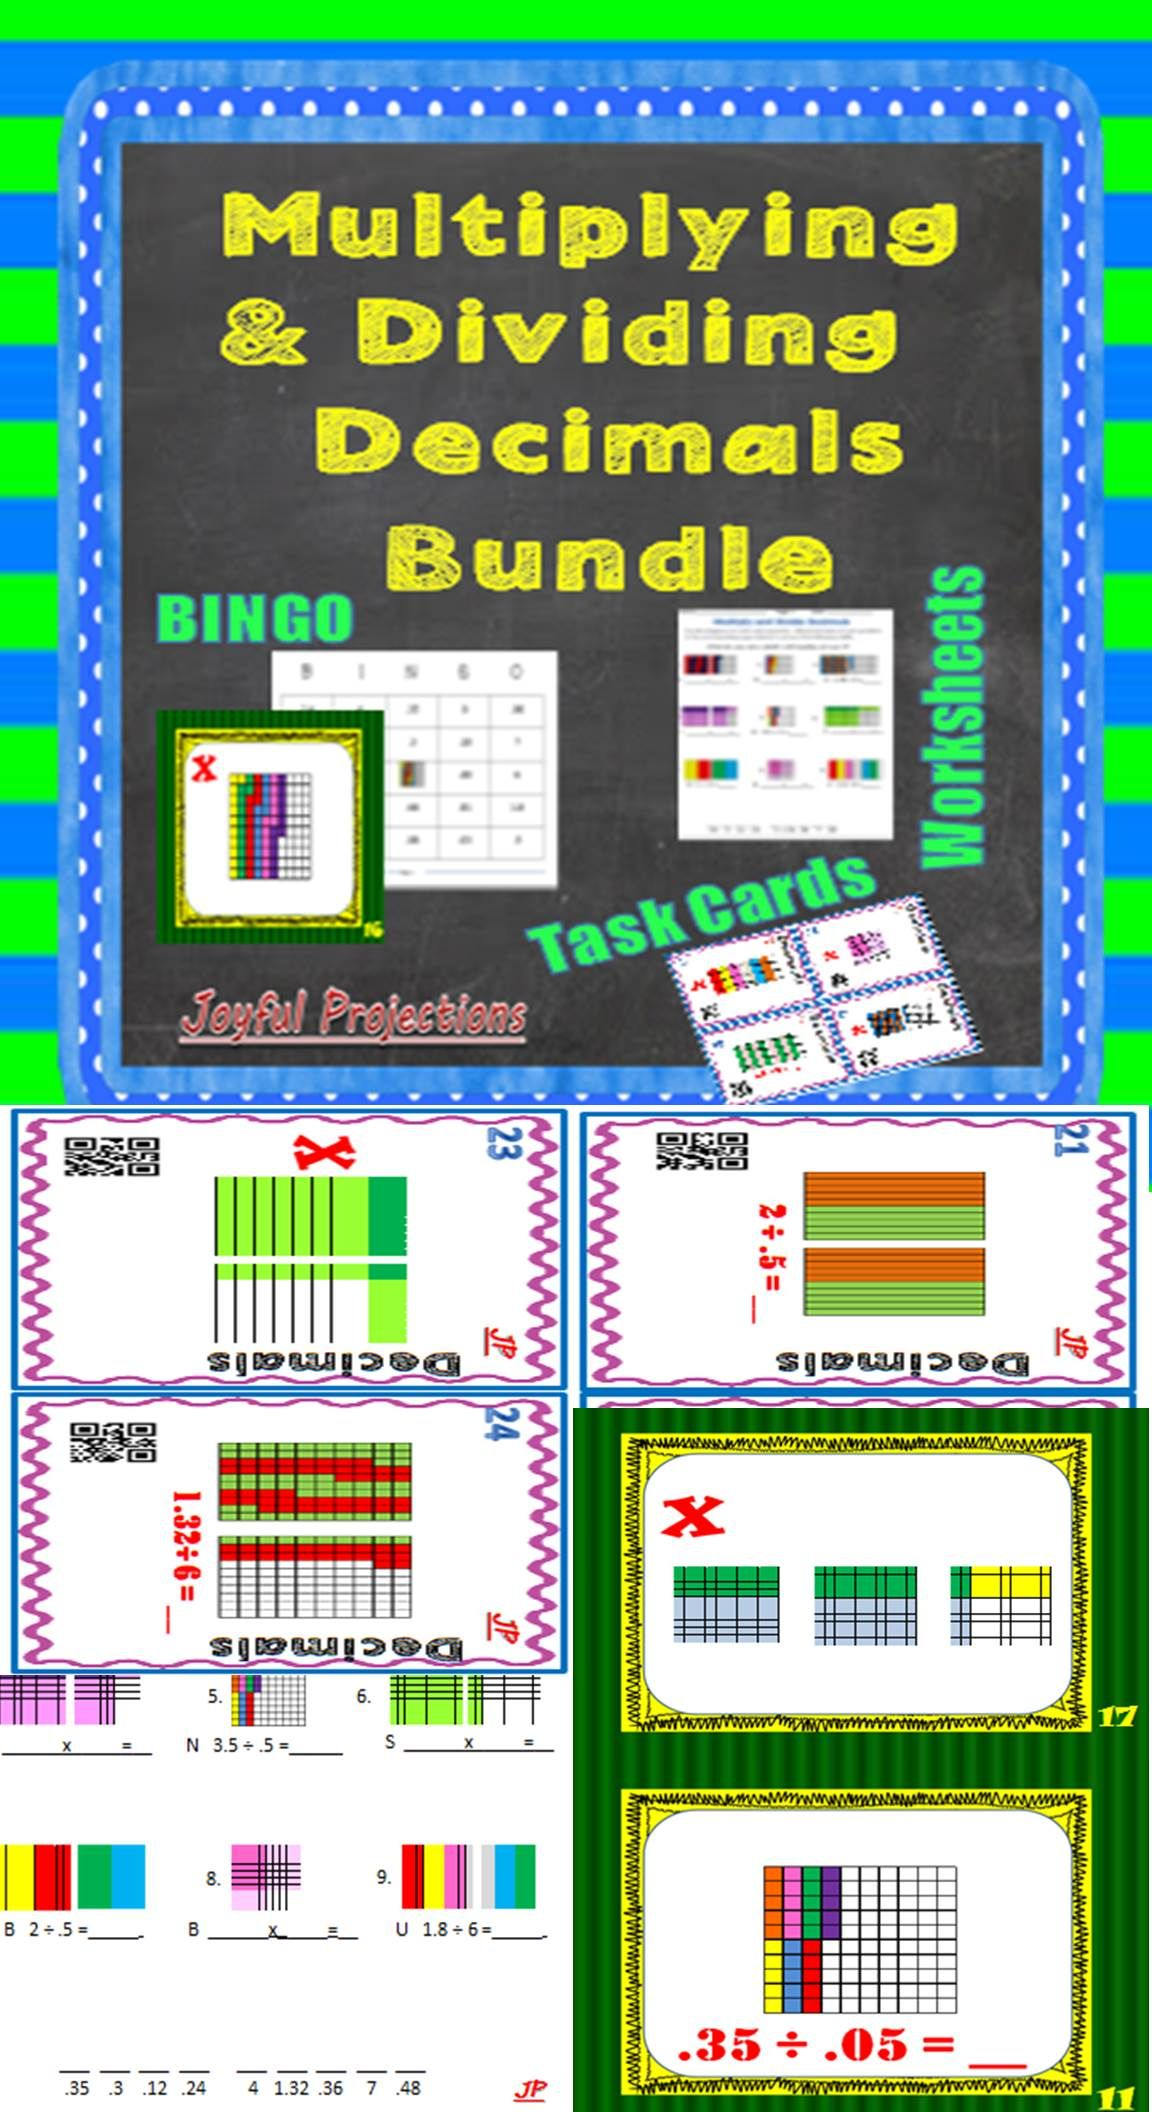 Multiply and Divide Decimals - Bingo, Task Cards, and Worksheets w ...